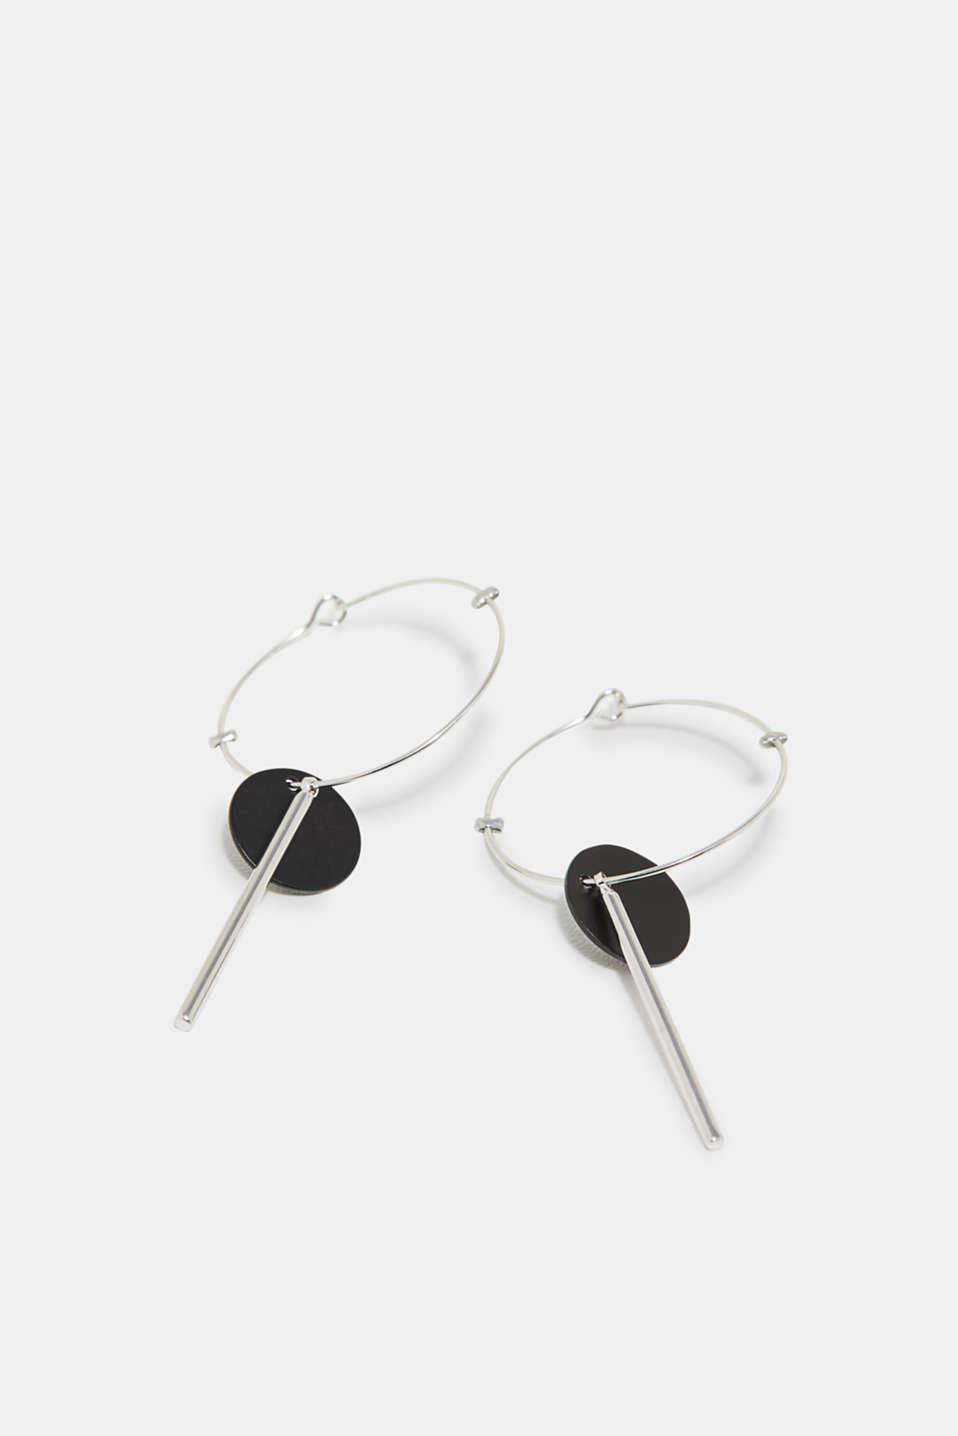 Fine hoop earrings and the geometric pendant shapes make these earrings really eye-catching.